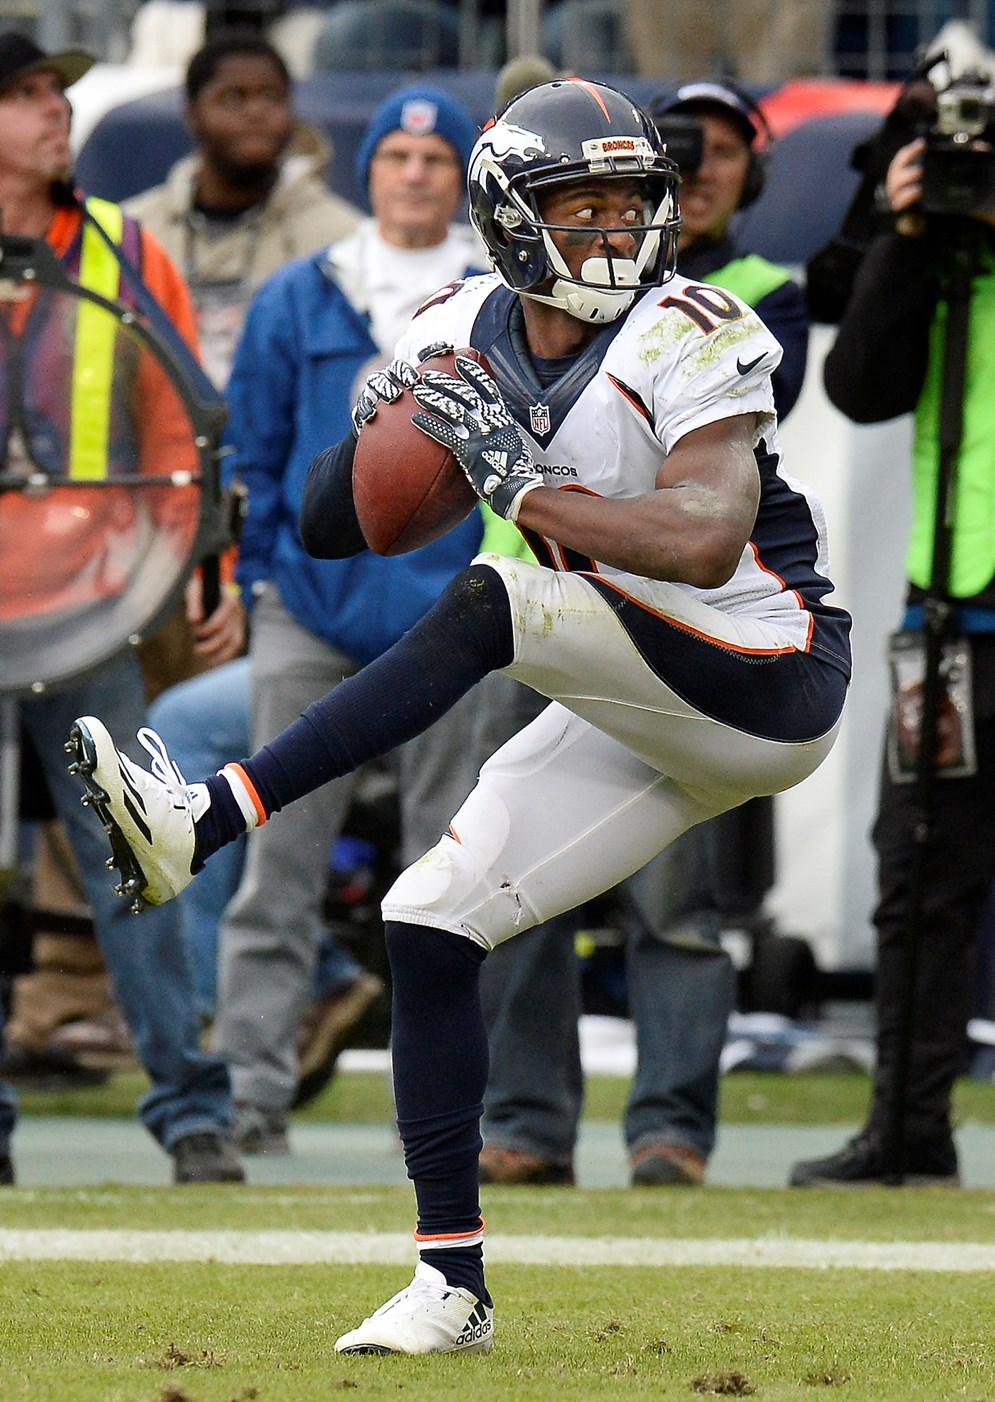 Broncos wide receiver Emmanuel Sanders winds up like a baseball pitcher before throwing the football after scoring a touchdown on a 3-yard run. Sanders was penalized for unsportsmanlike conduct for the celebration. In 2017, players can use the football as part of their celebrations. (AP Photo/Mark Zaleski)